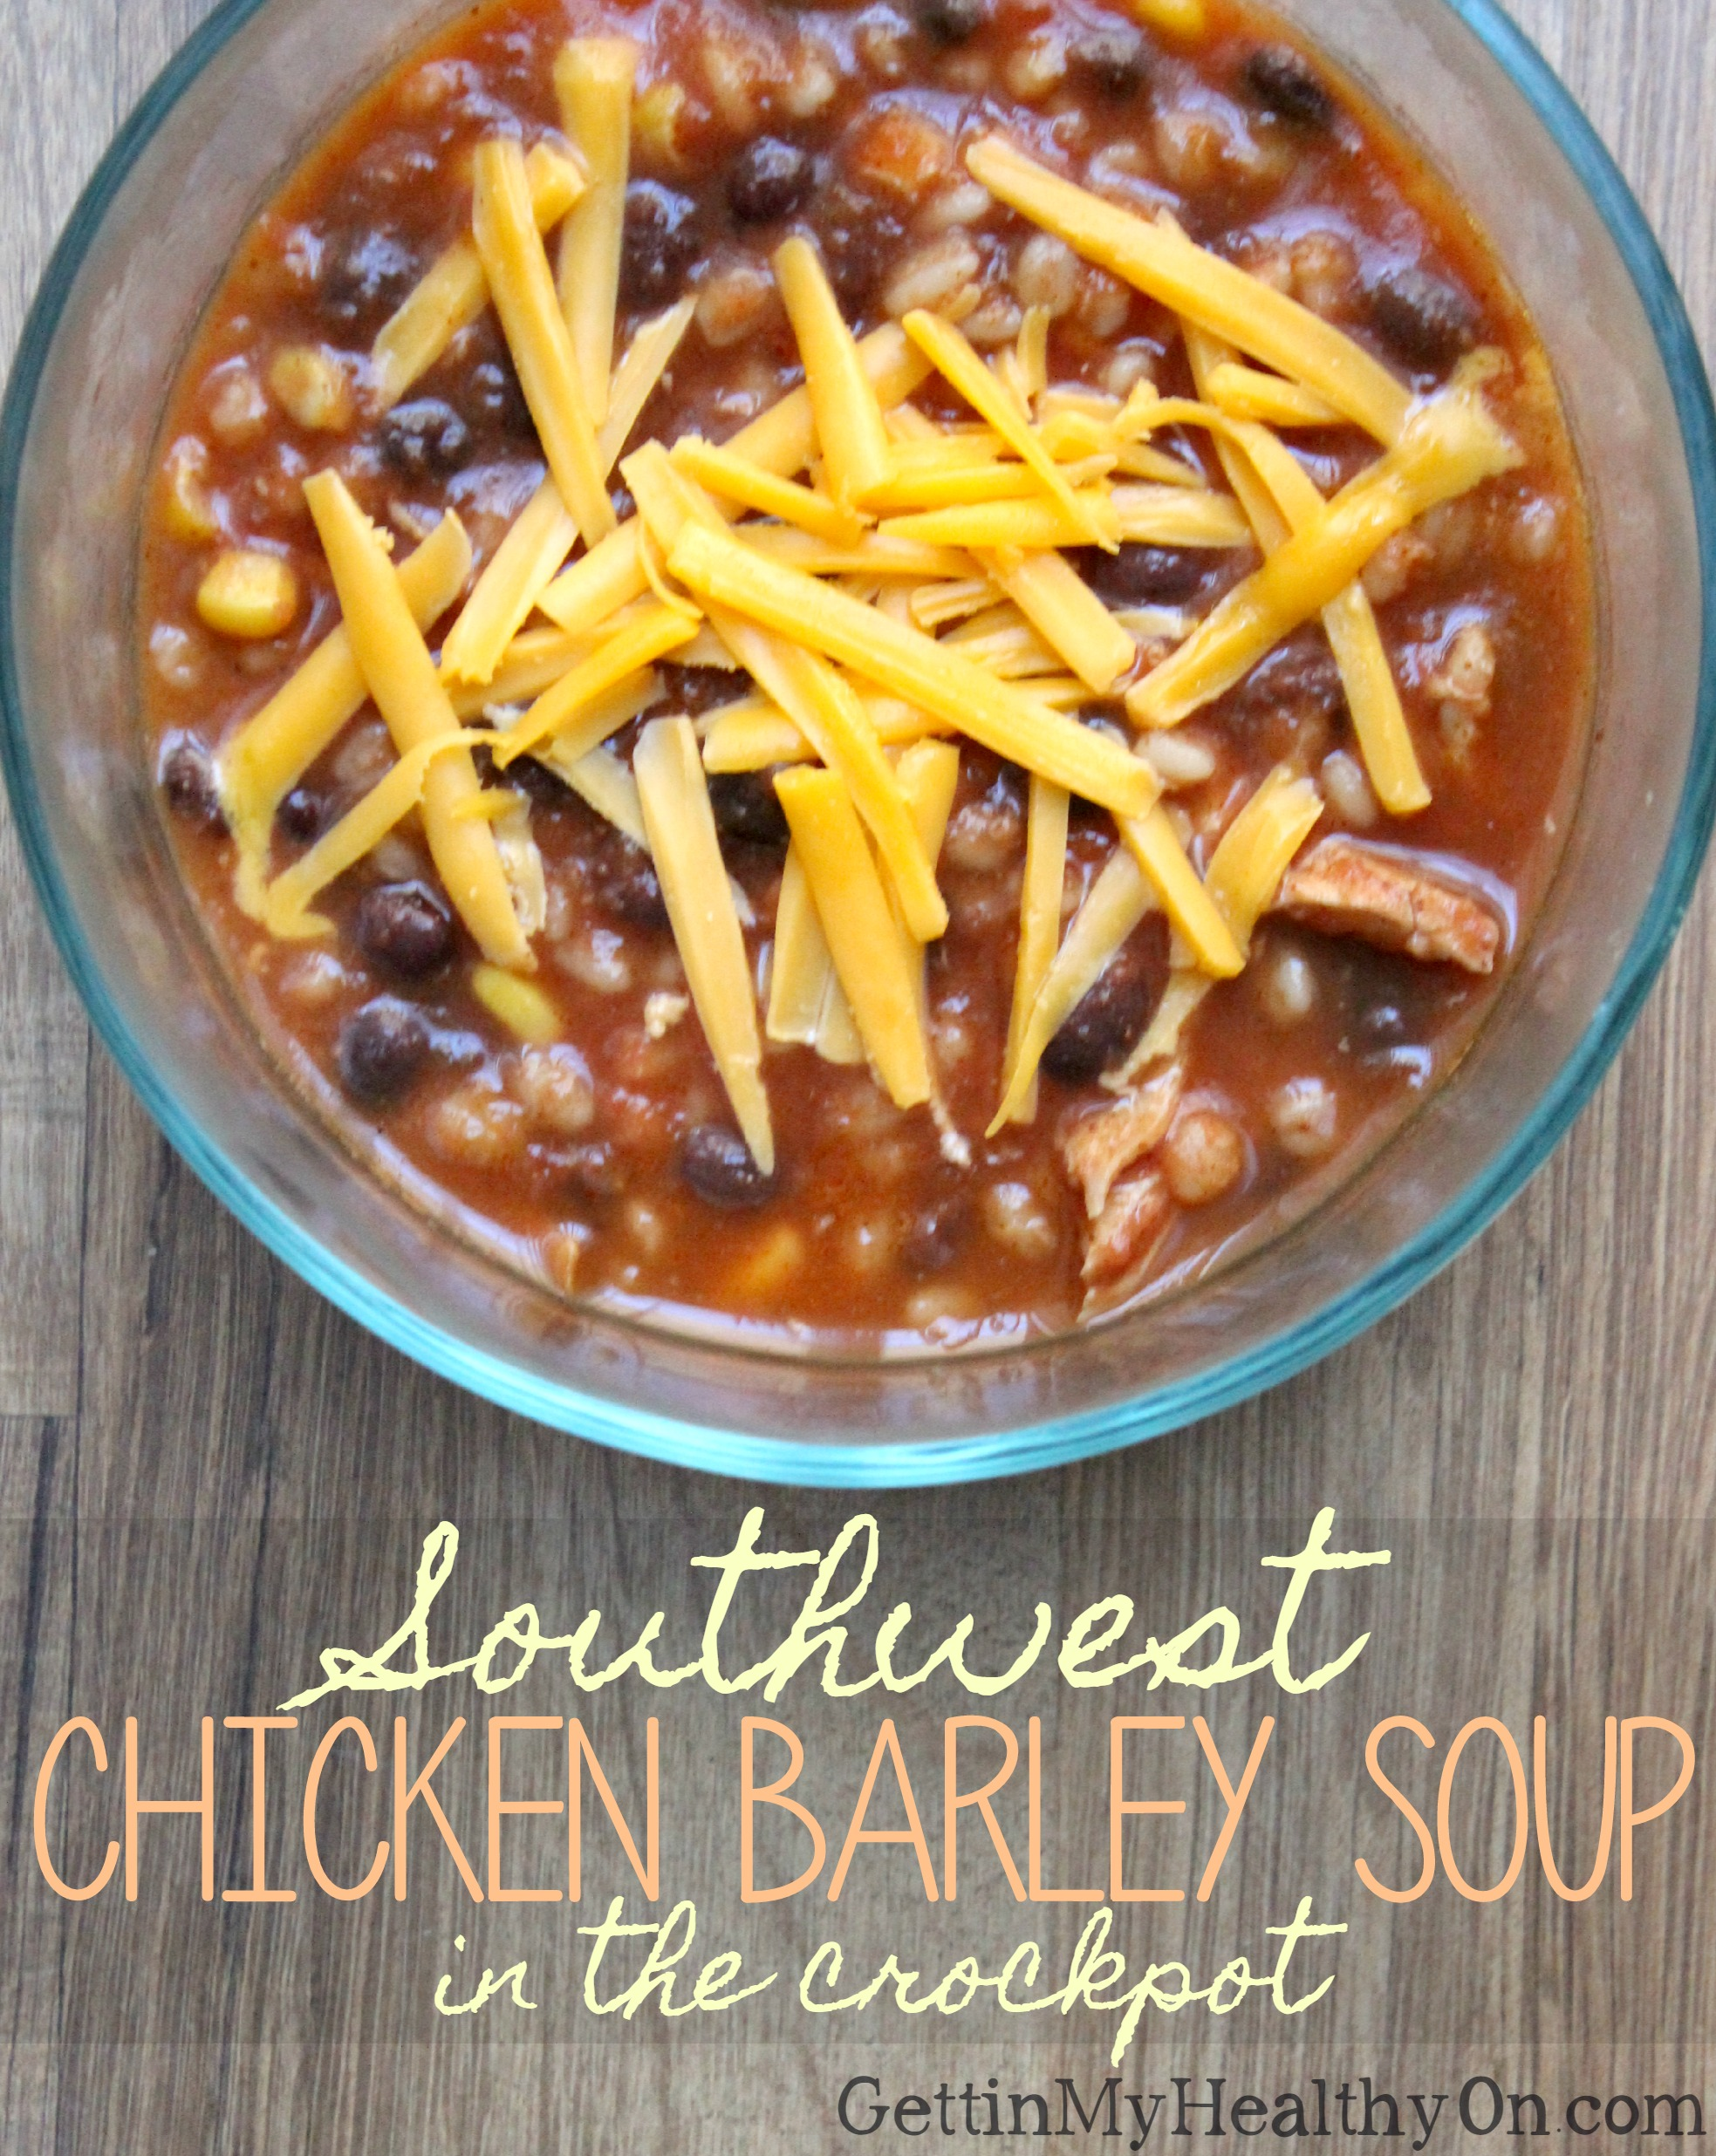 Southwest Chicken Barley Soup in the Crockpot